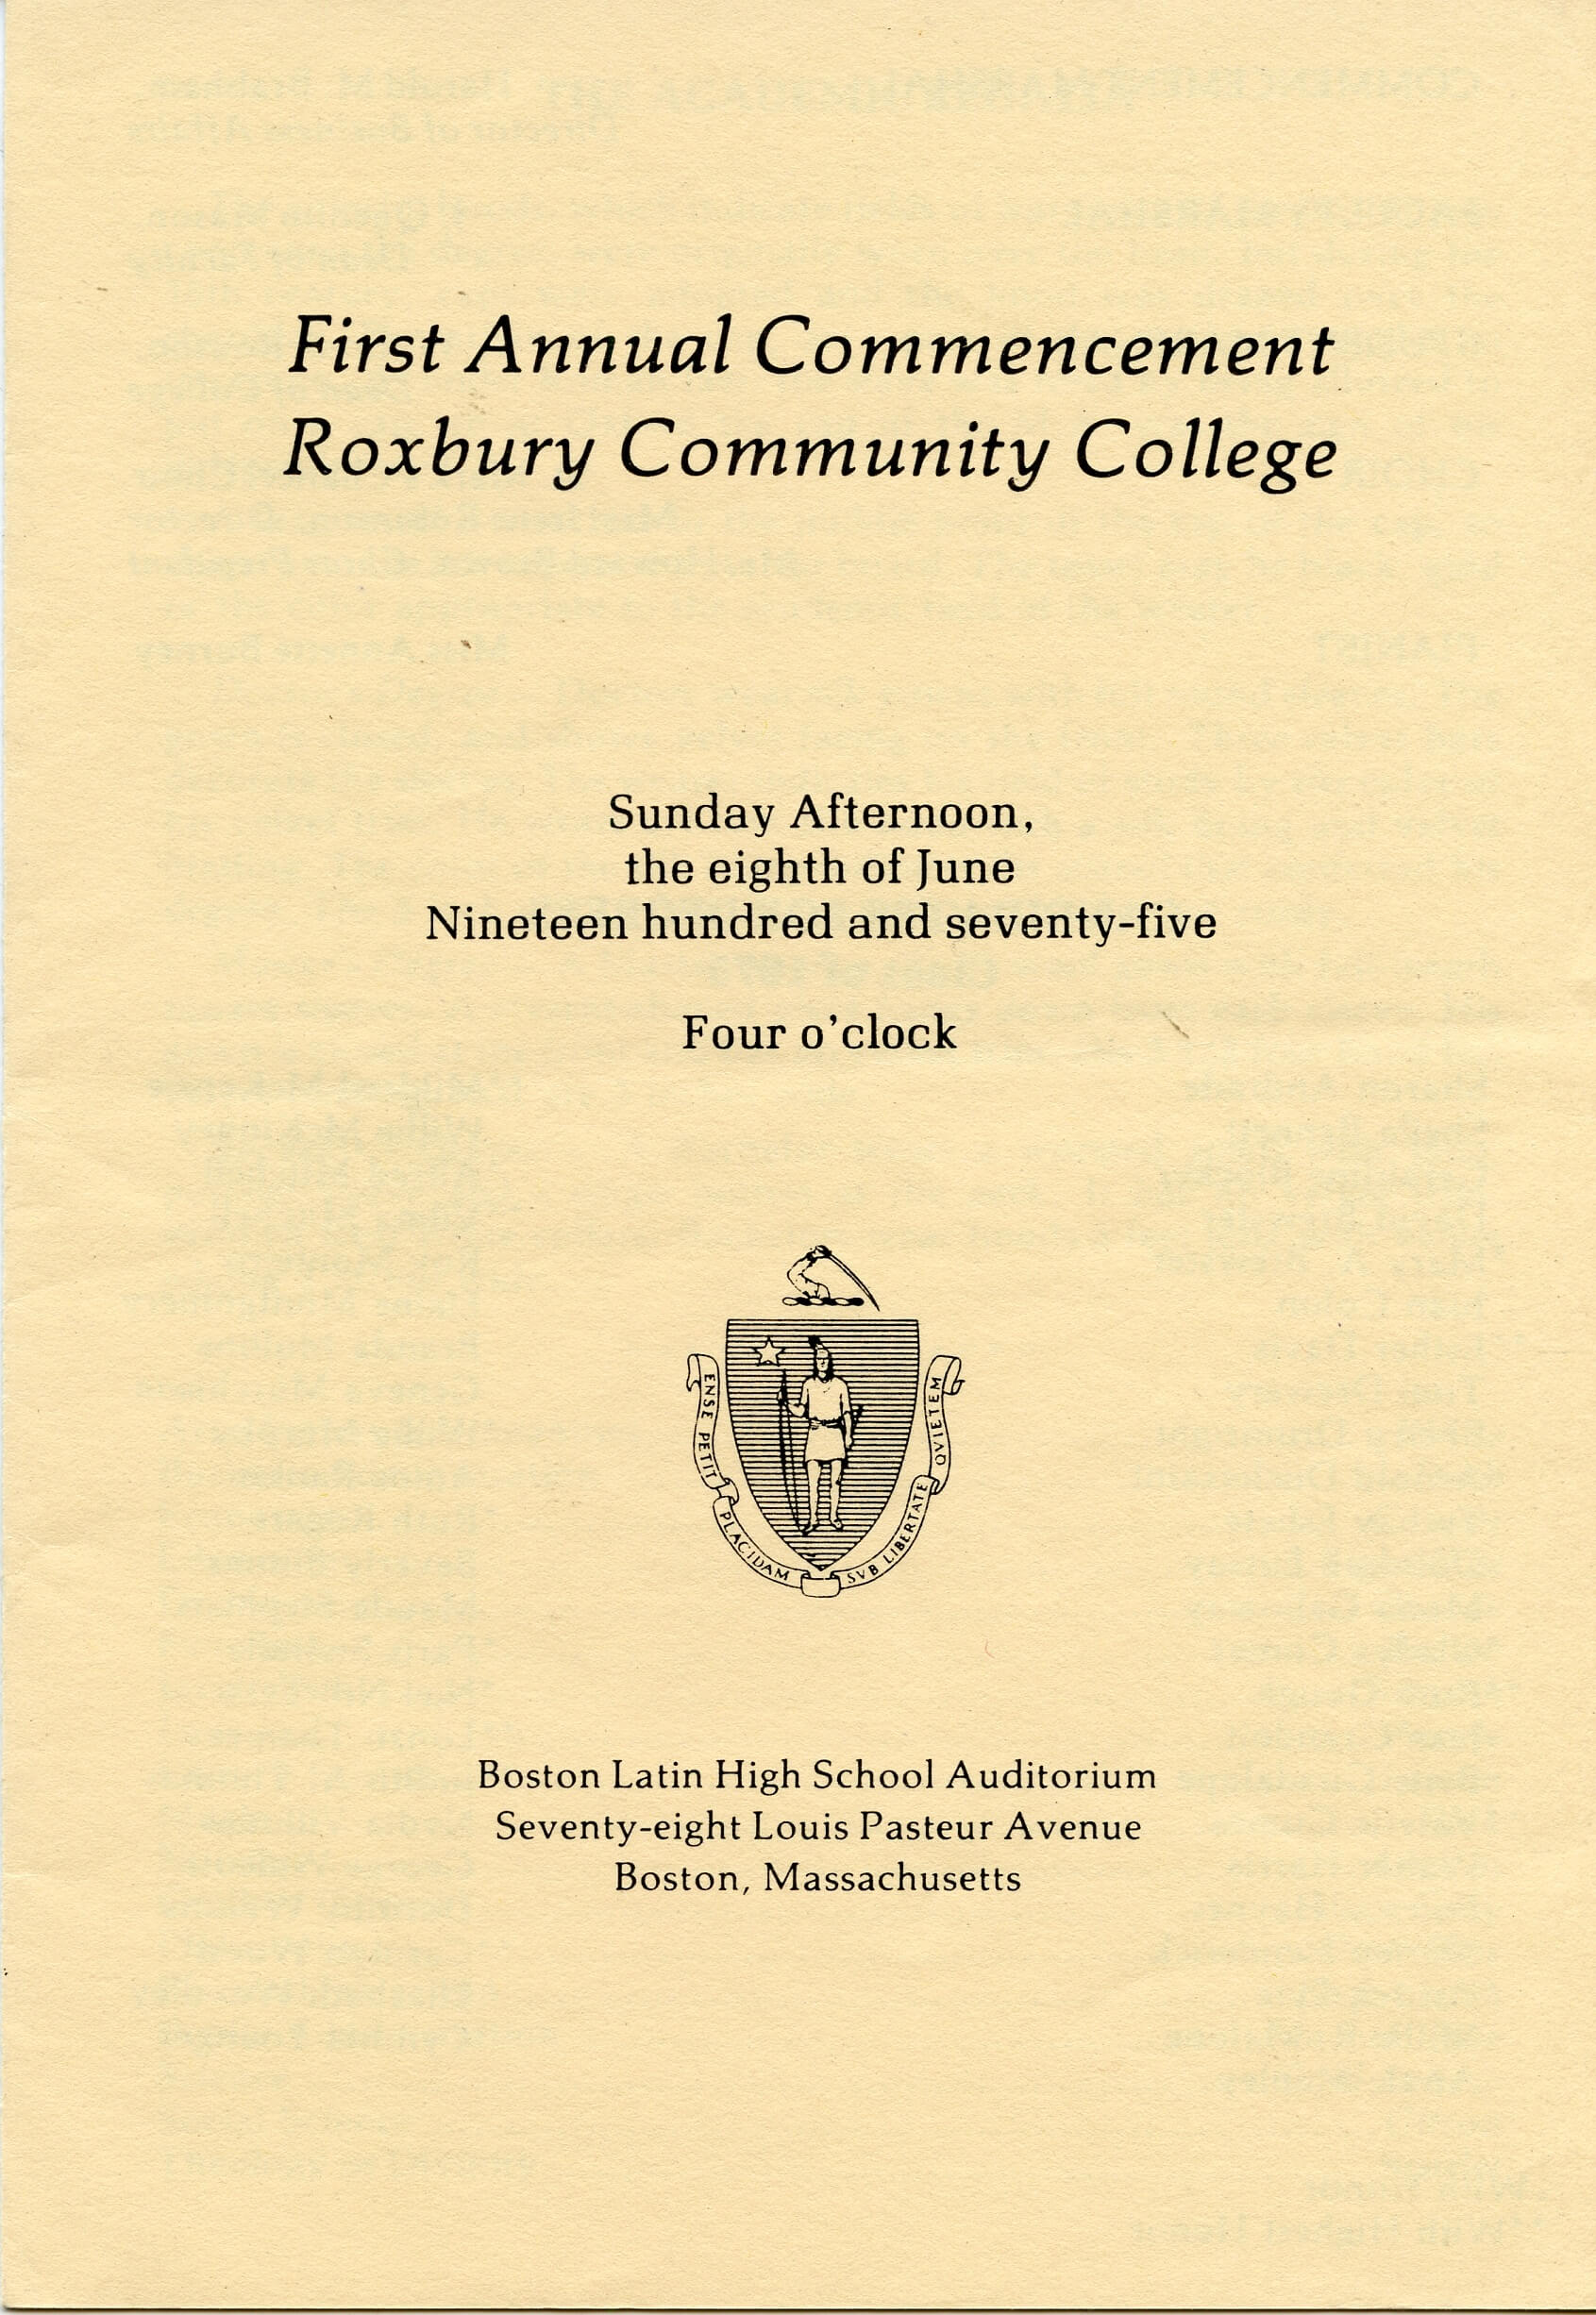 ROXBURY COMMUNITY COLLEGE, FIRST COMMENCEMENT (1975)